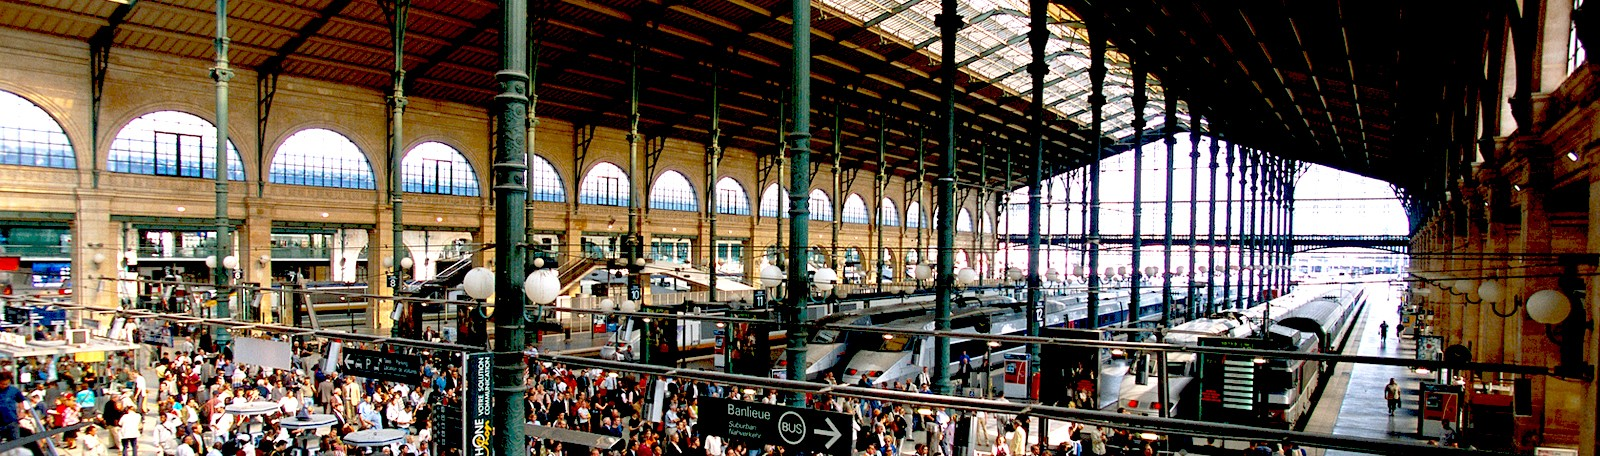 Saint-Lazare train station - Stations, public transport - Paris